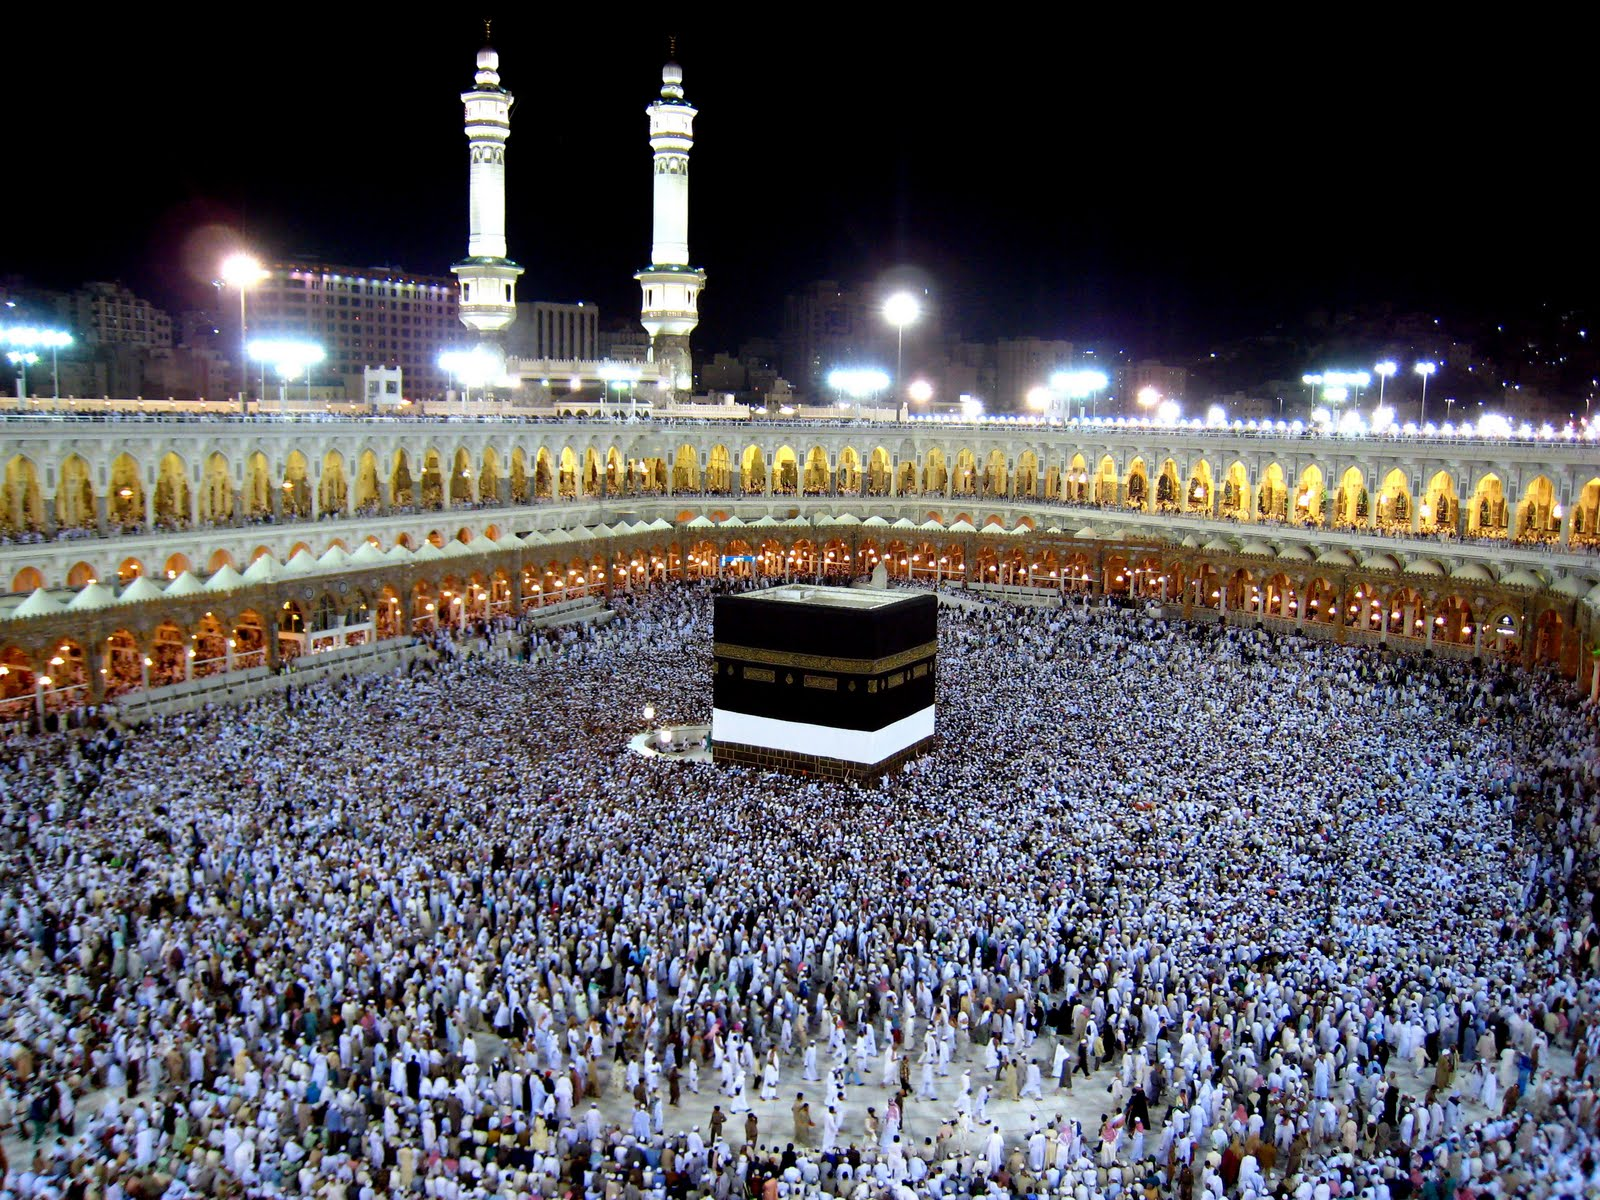 WATCH LIVE HAJJ FROM SAUDI ARABIA HD QUALITY TELECAST